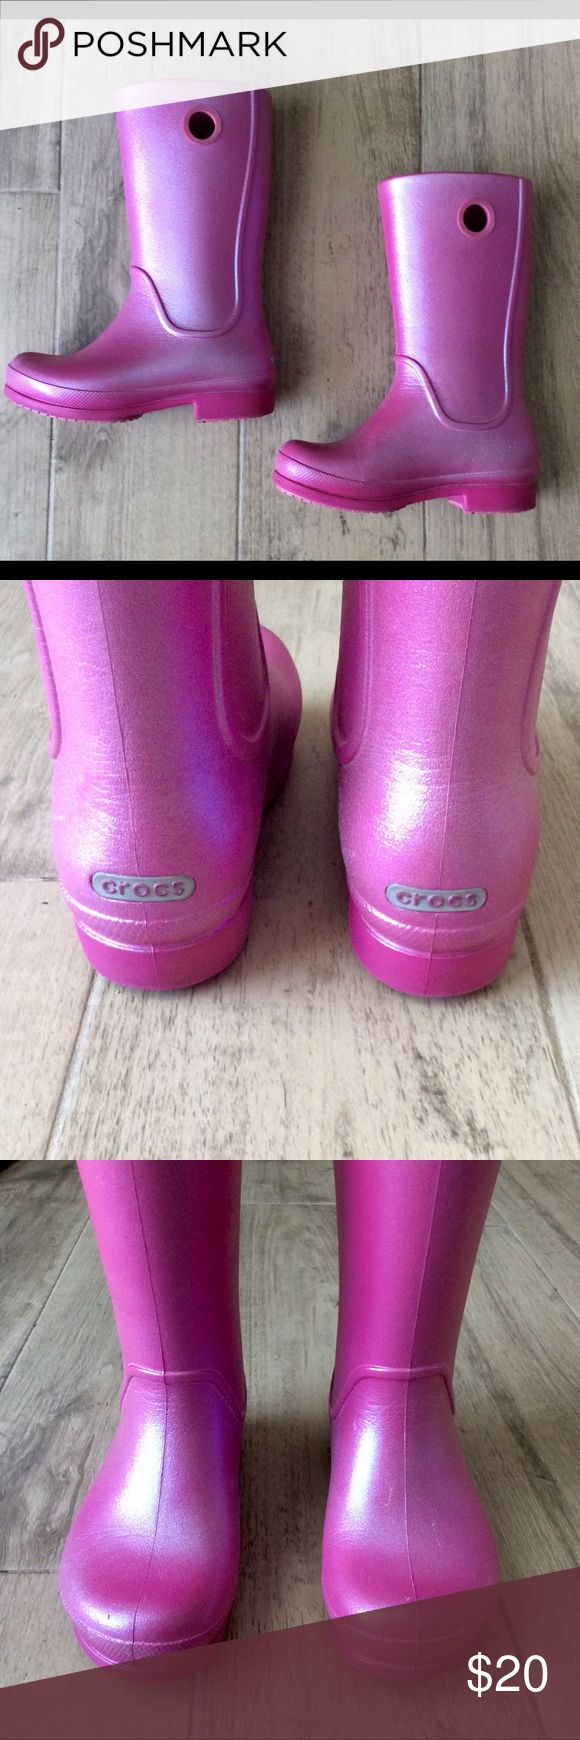 CROCS ☔️Little Girl's Rain Boots☔️ Very cute and comfy Pink Iridescent Rain Boots! Barely worn. There is a tiny bit of wear as shown in pic 4. CROCS does not make this style any longer. CROCS Shoes Rain & Snow Boots